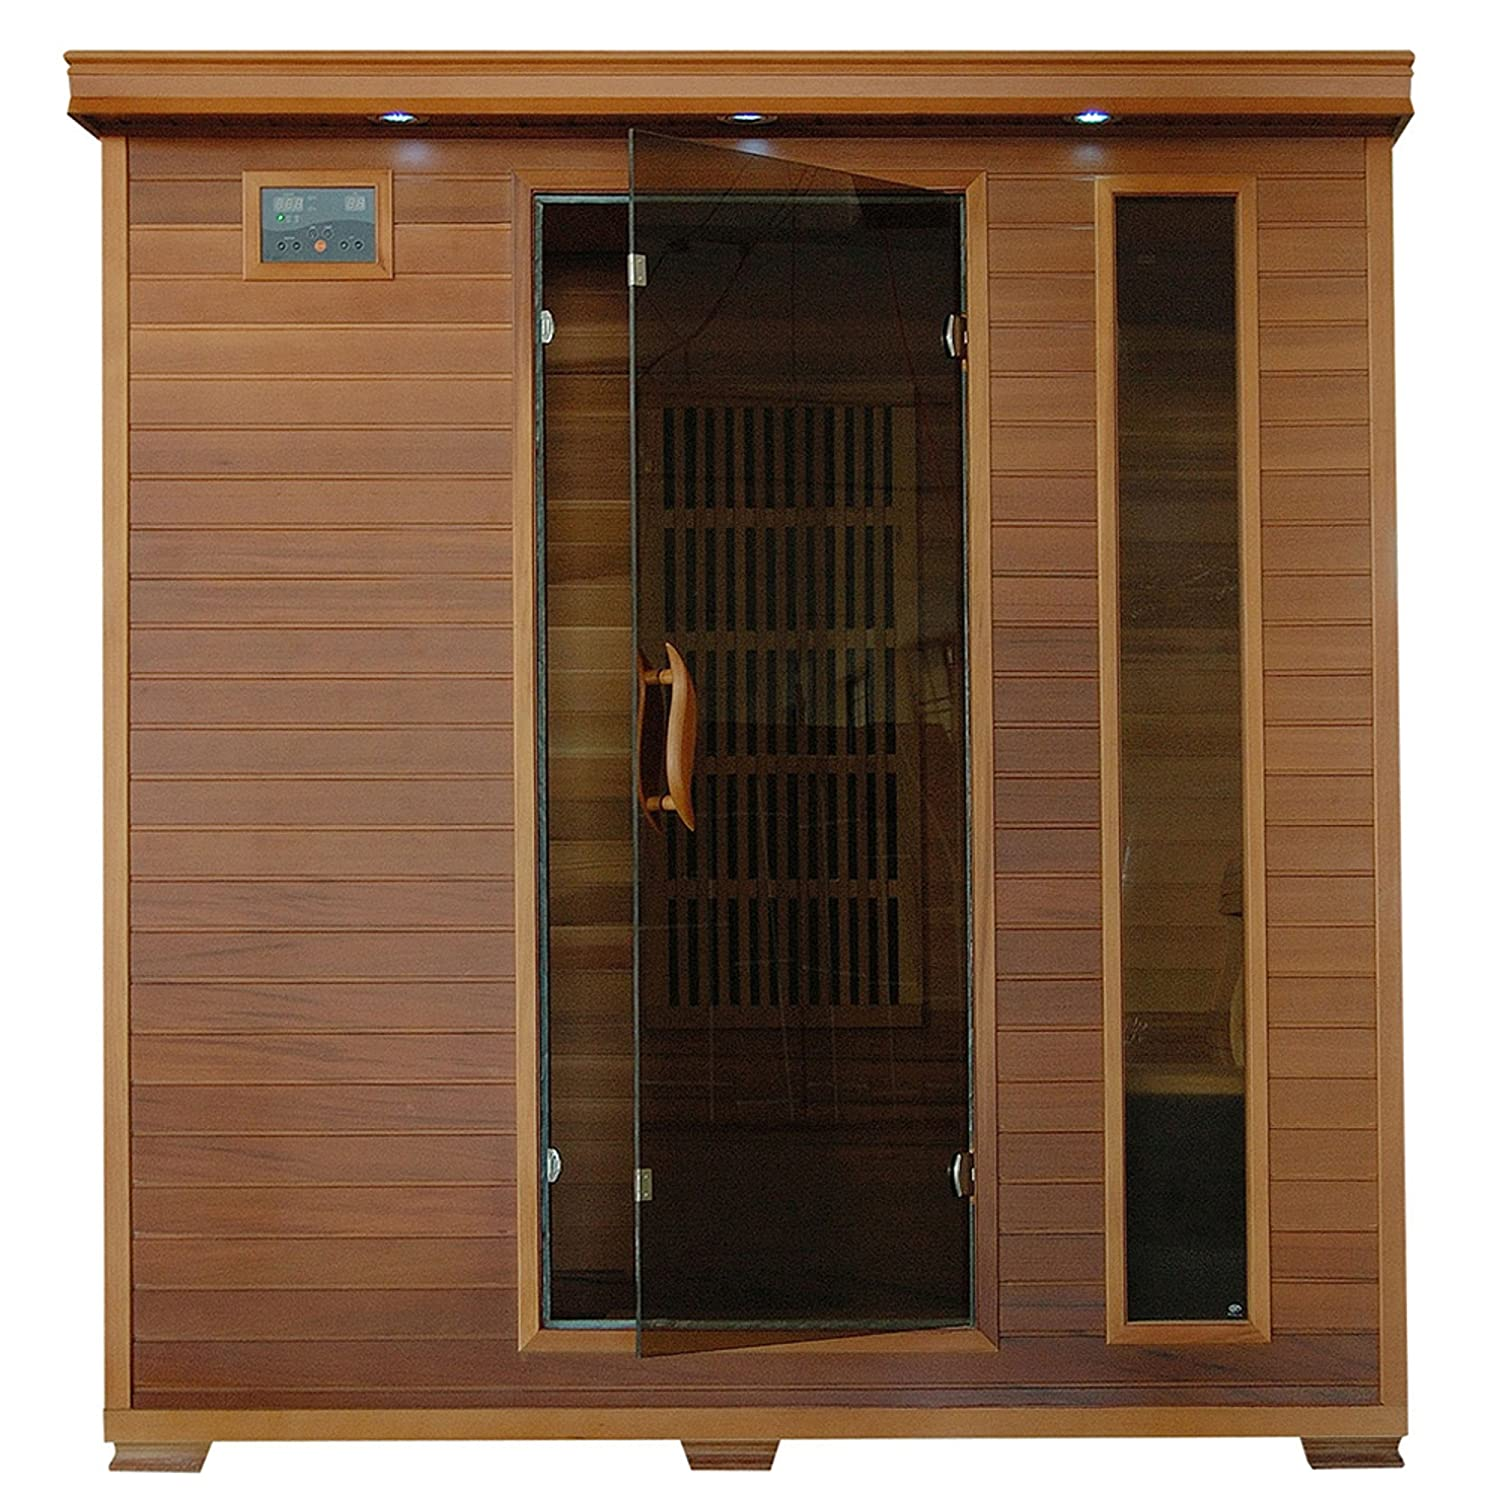 Radiant Saunas 4-Person Cedar Infrared Sauna with 9 Carbon Heaters, Chromotherapy Lighting, Oxygen Ionizer, Music System